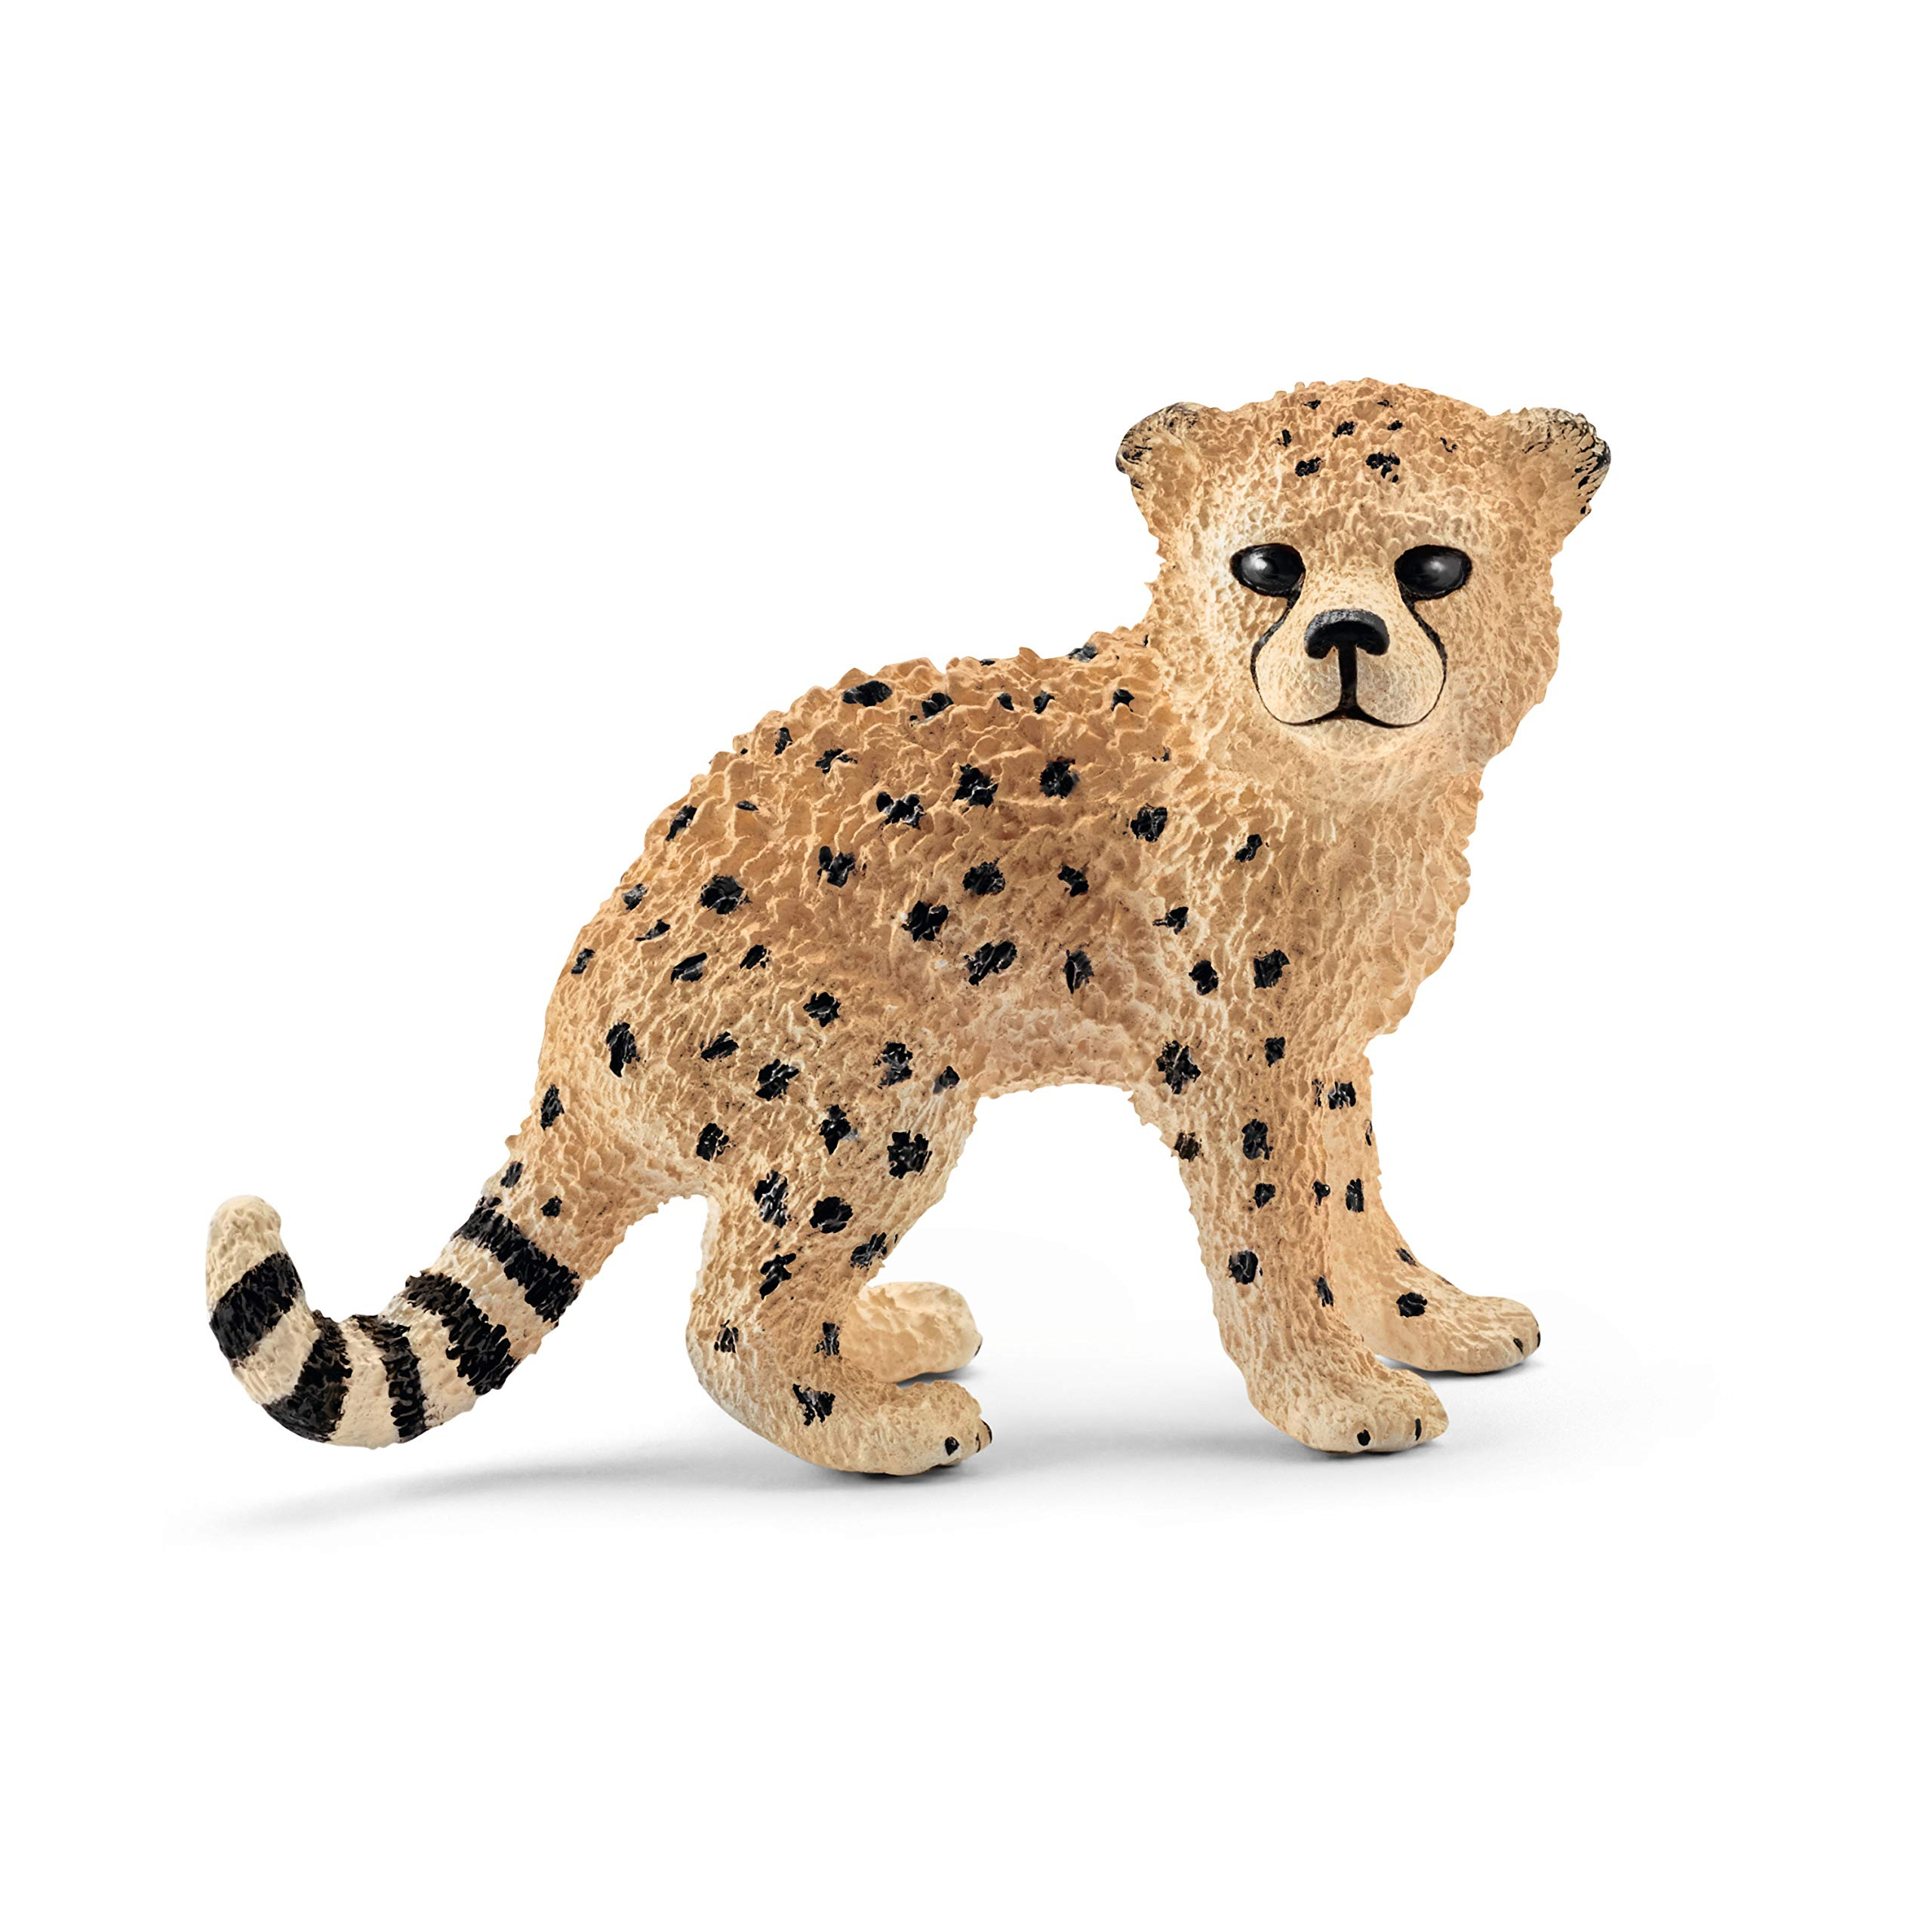 Schleich Wild Life, Animal Figurine, Animal Toys for Boys and Girls 3-8 years old, Cheetah Cub